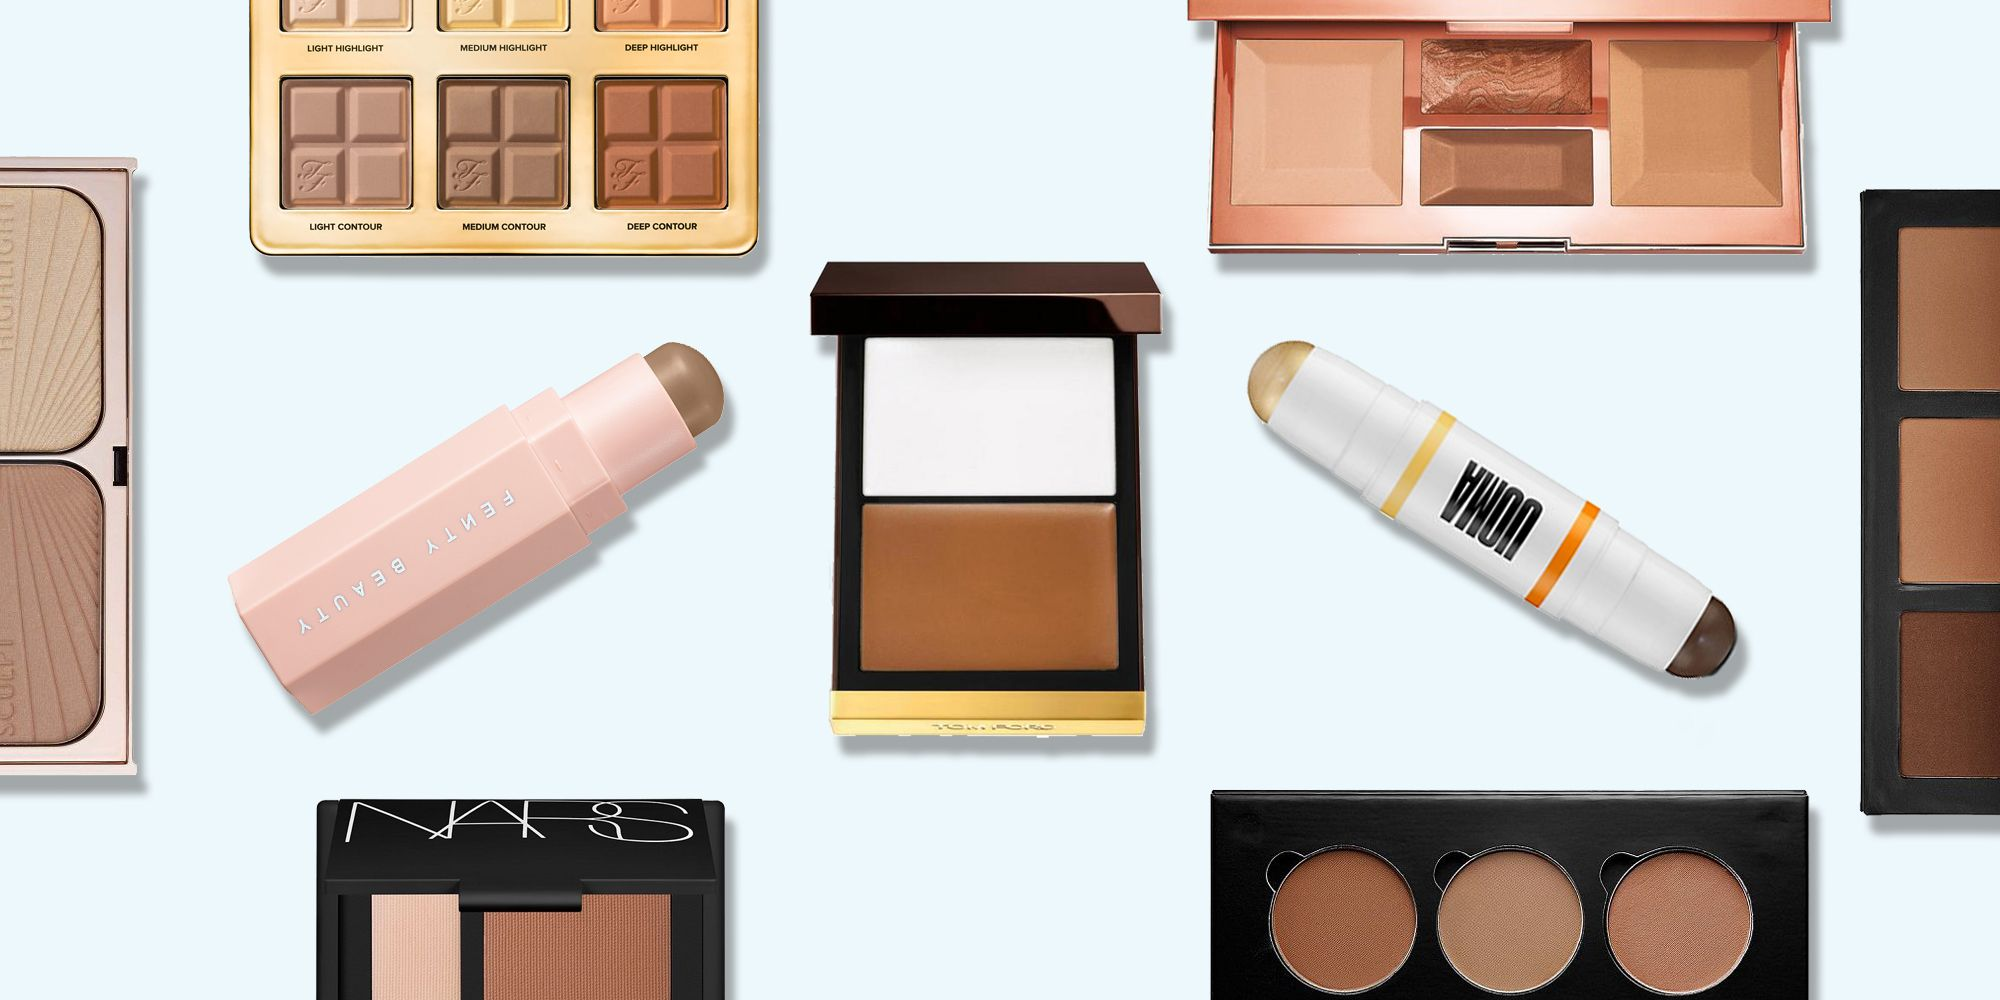 13 Of The Best Contour Kits For Sky High Cheekbones